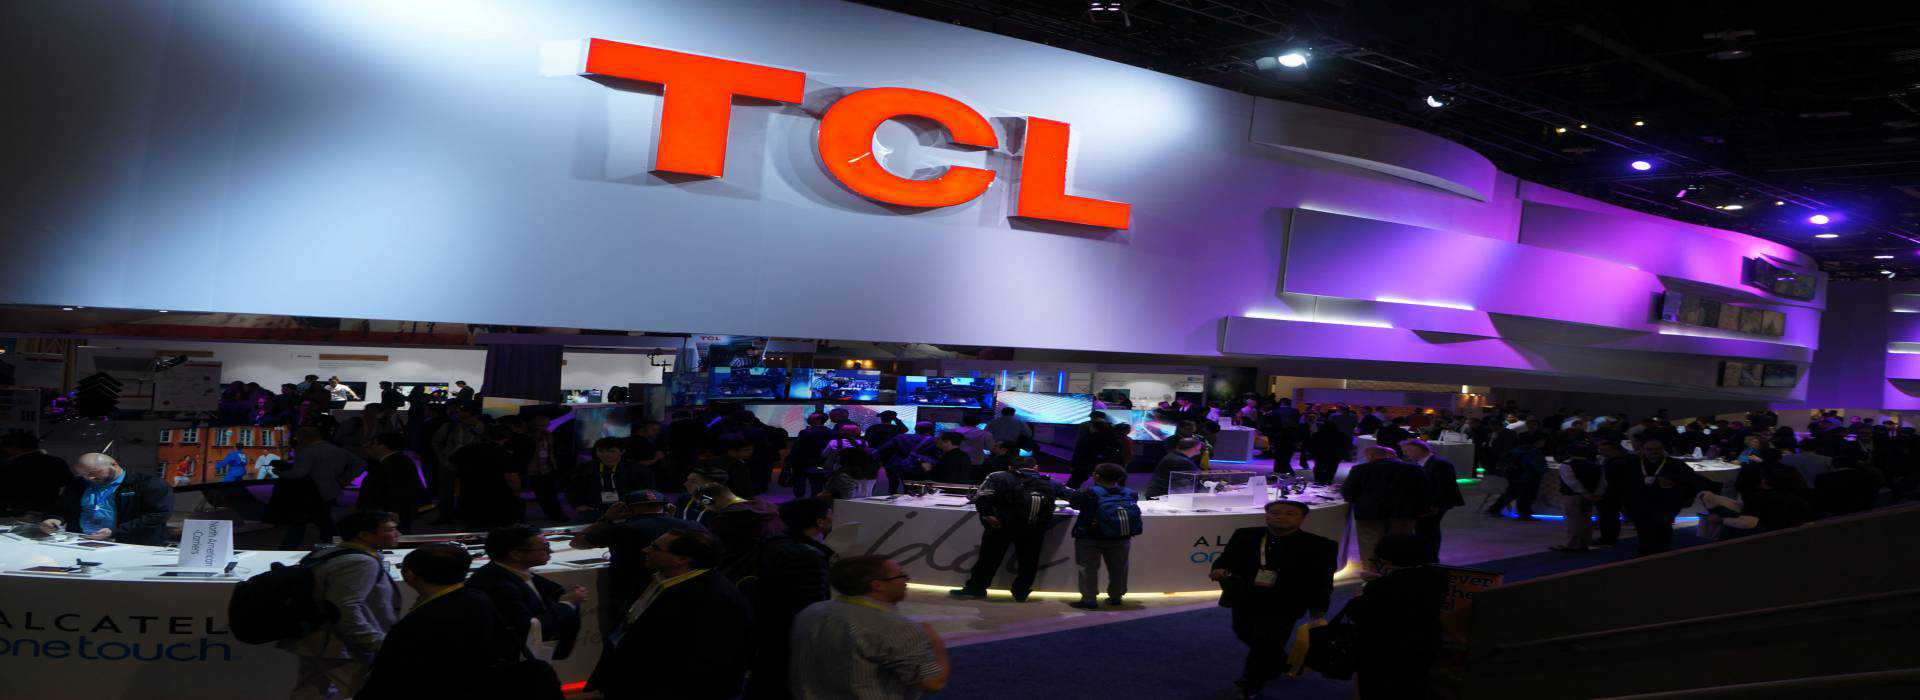 Tcl customer service usa email support for Mercedes benz usa customer service phone number